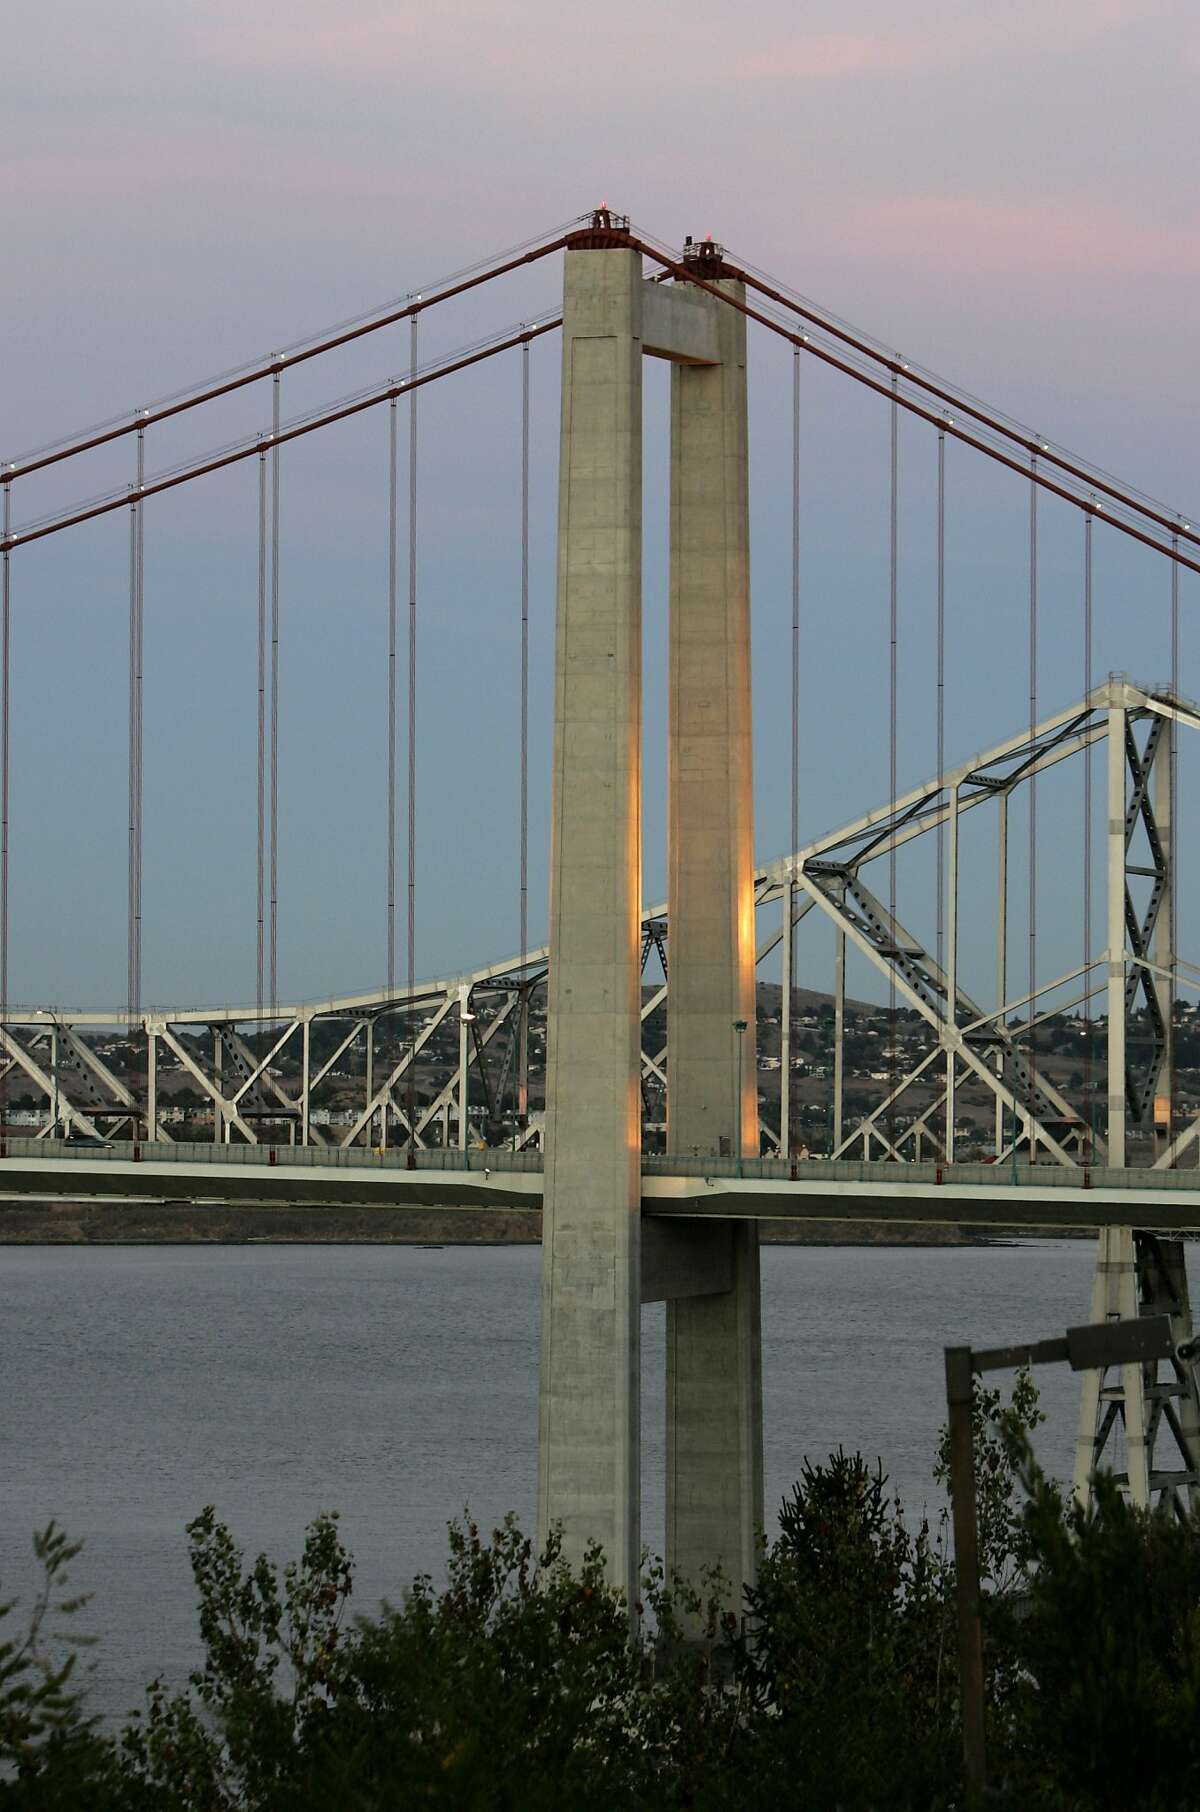 Sunset colors fill the sky behind the Carquinez Bridge in Crockett on Wednesday October 18, 2006.